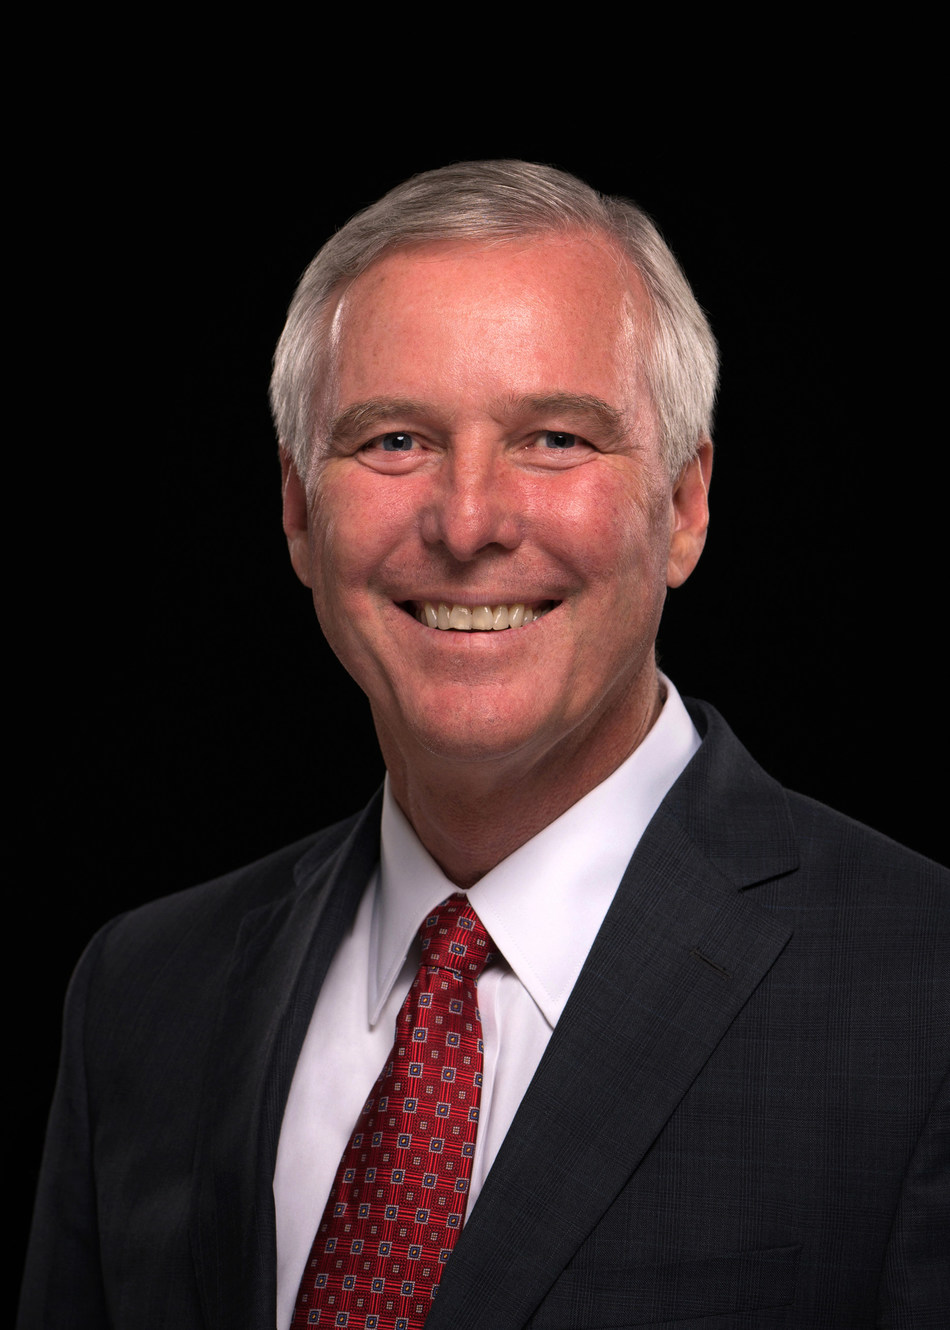 Jeff Storey, President and Chief Operating Officer